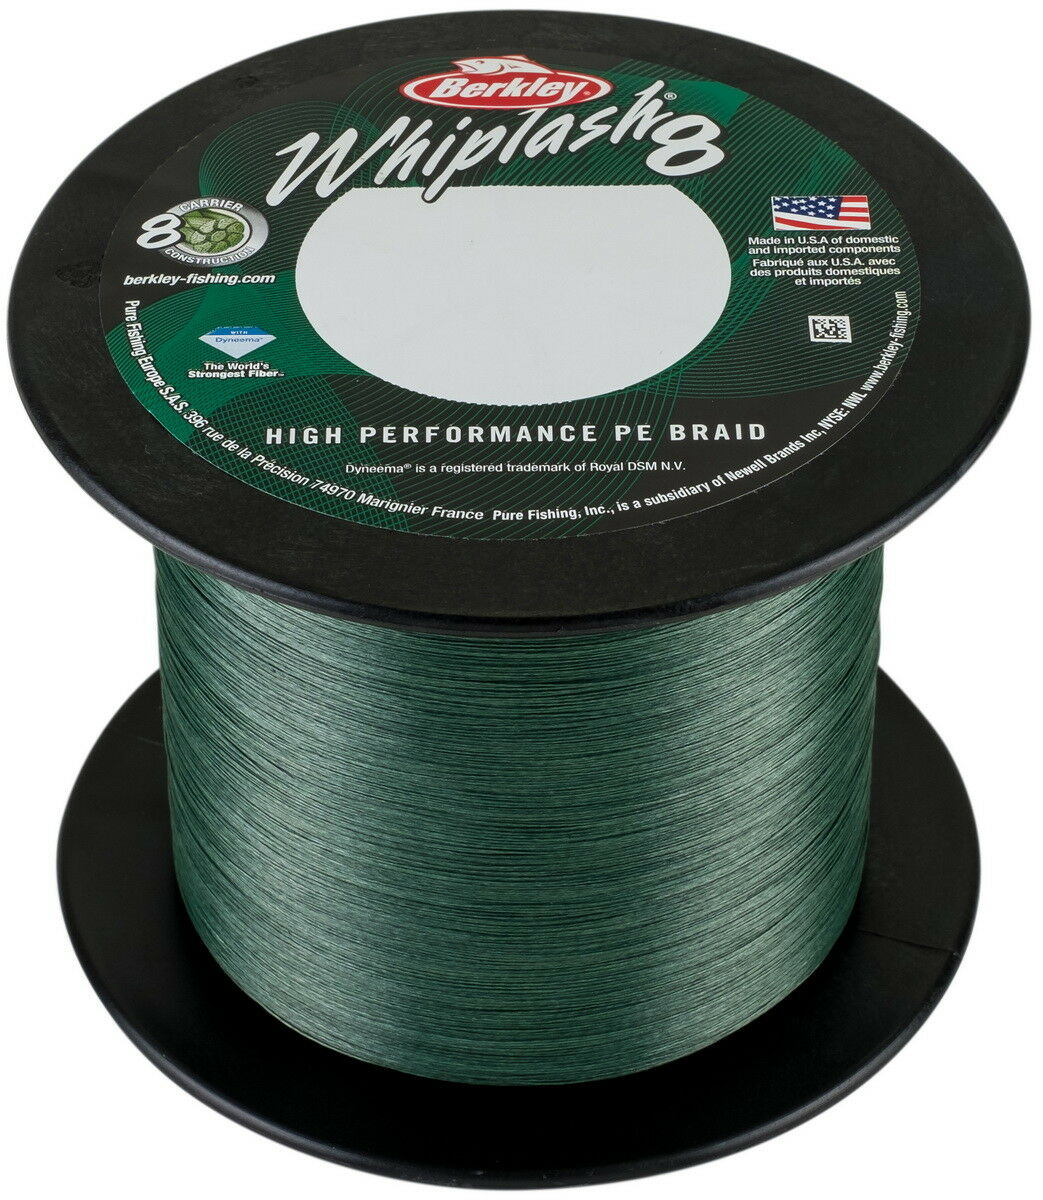 Berkley Whiplash 8 2000m 0.08 verde, Intrecciato lenza, braided line